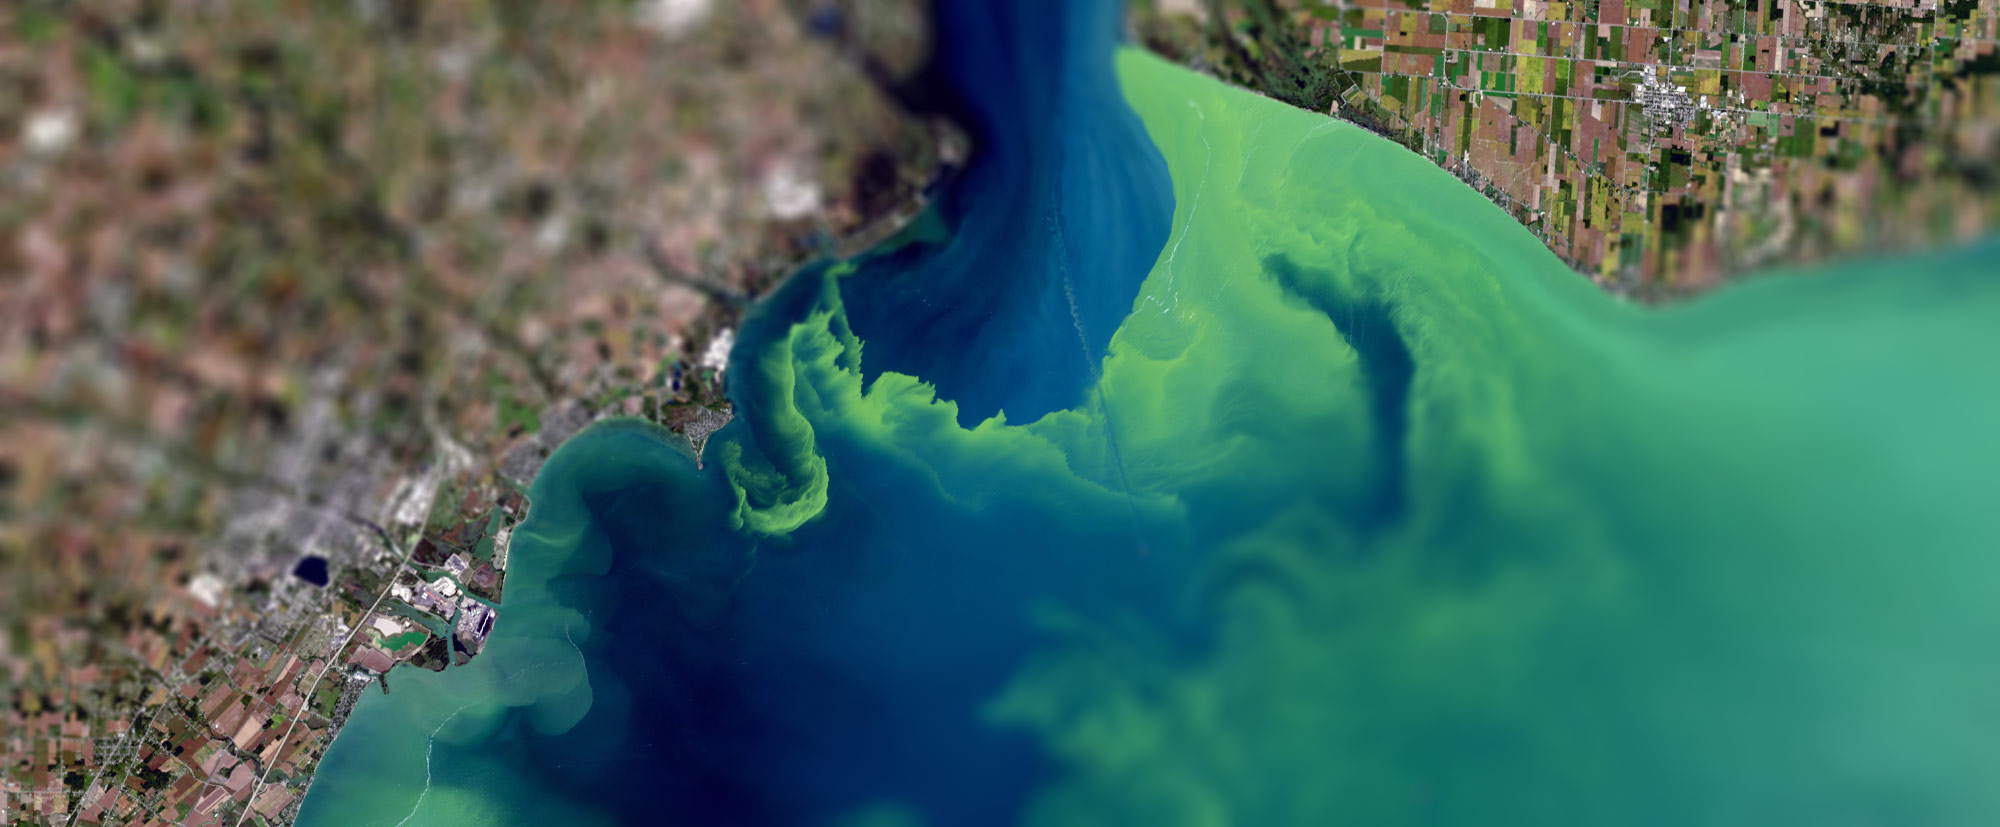 an image of 2017 harmful algal bloom in Lake Erie